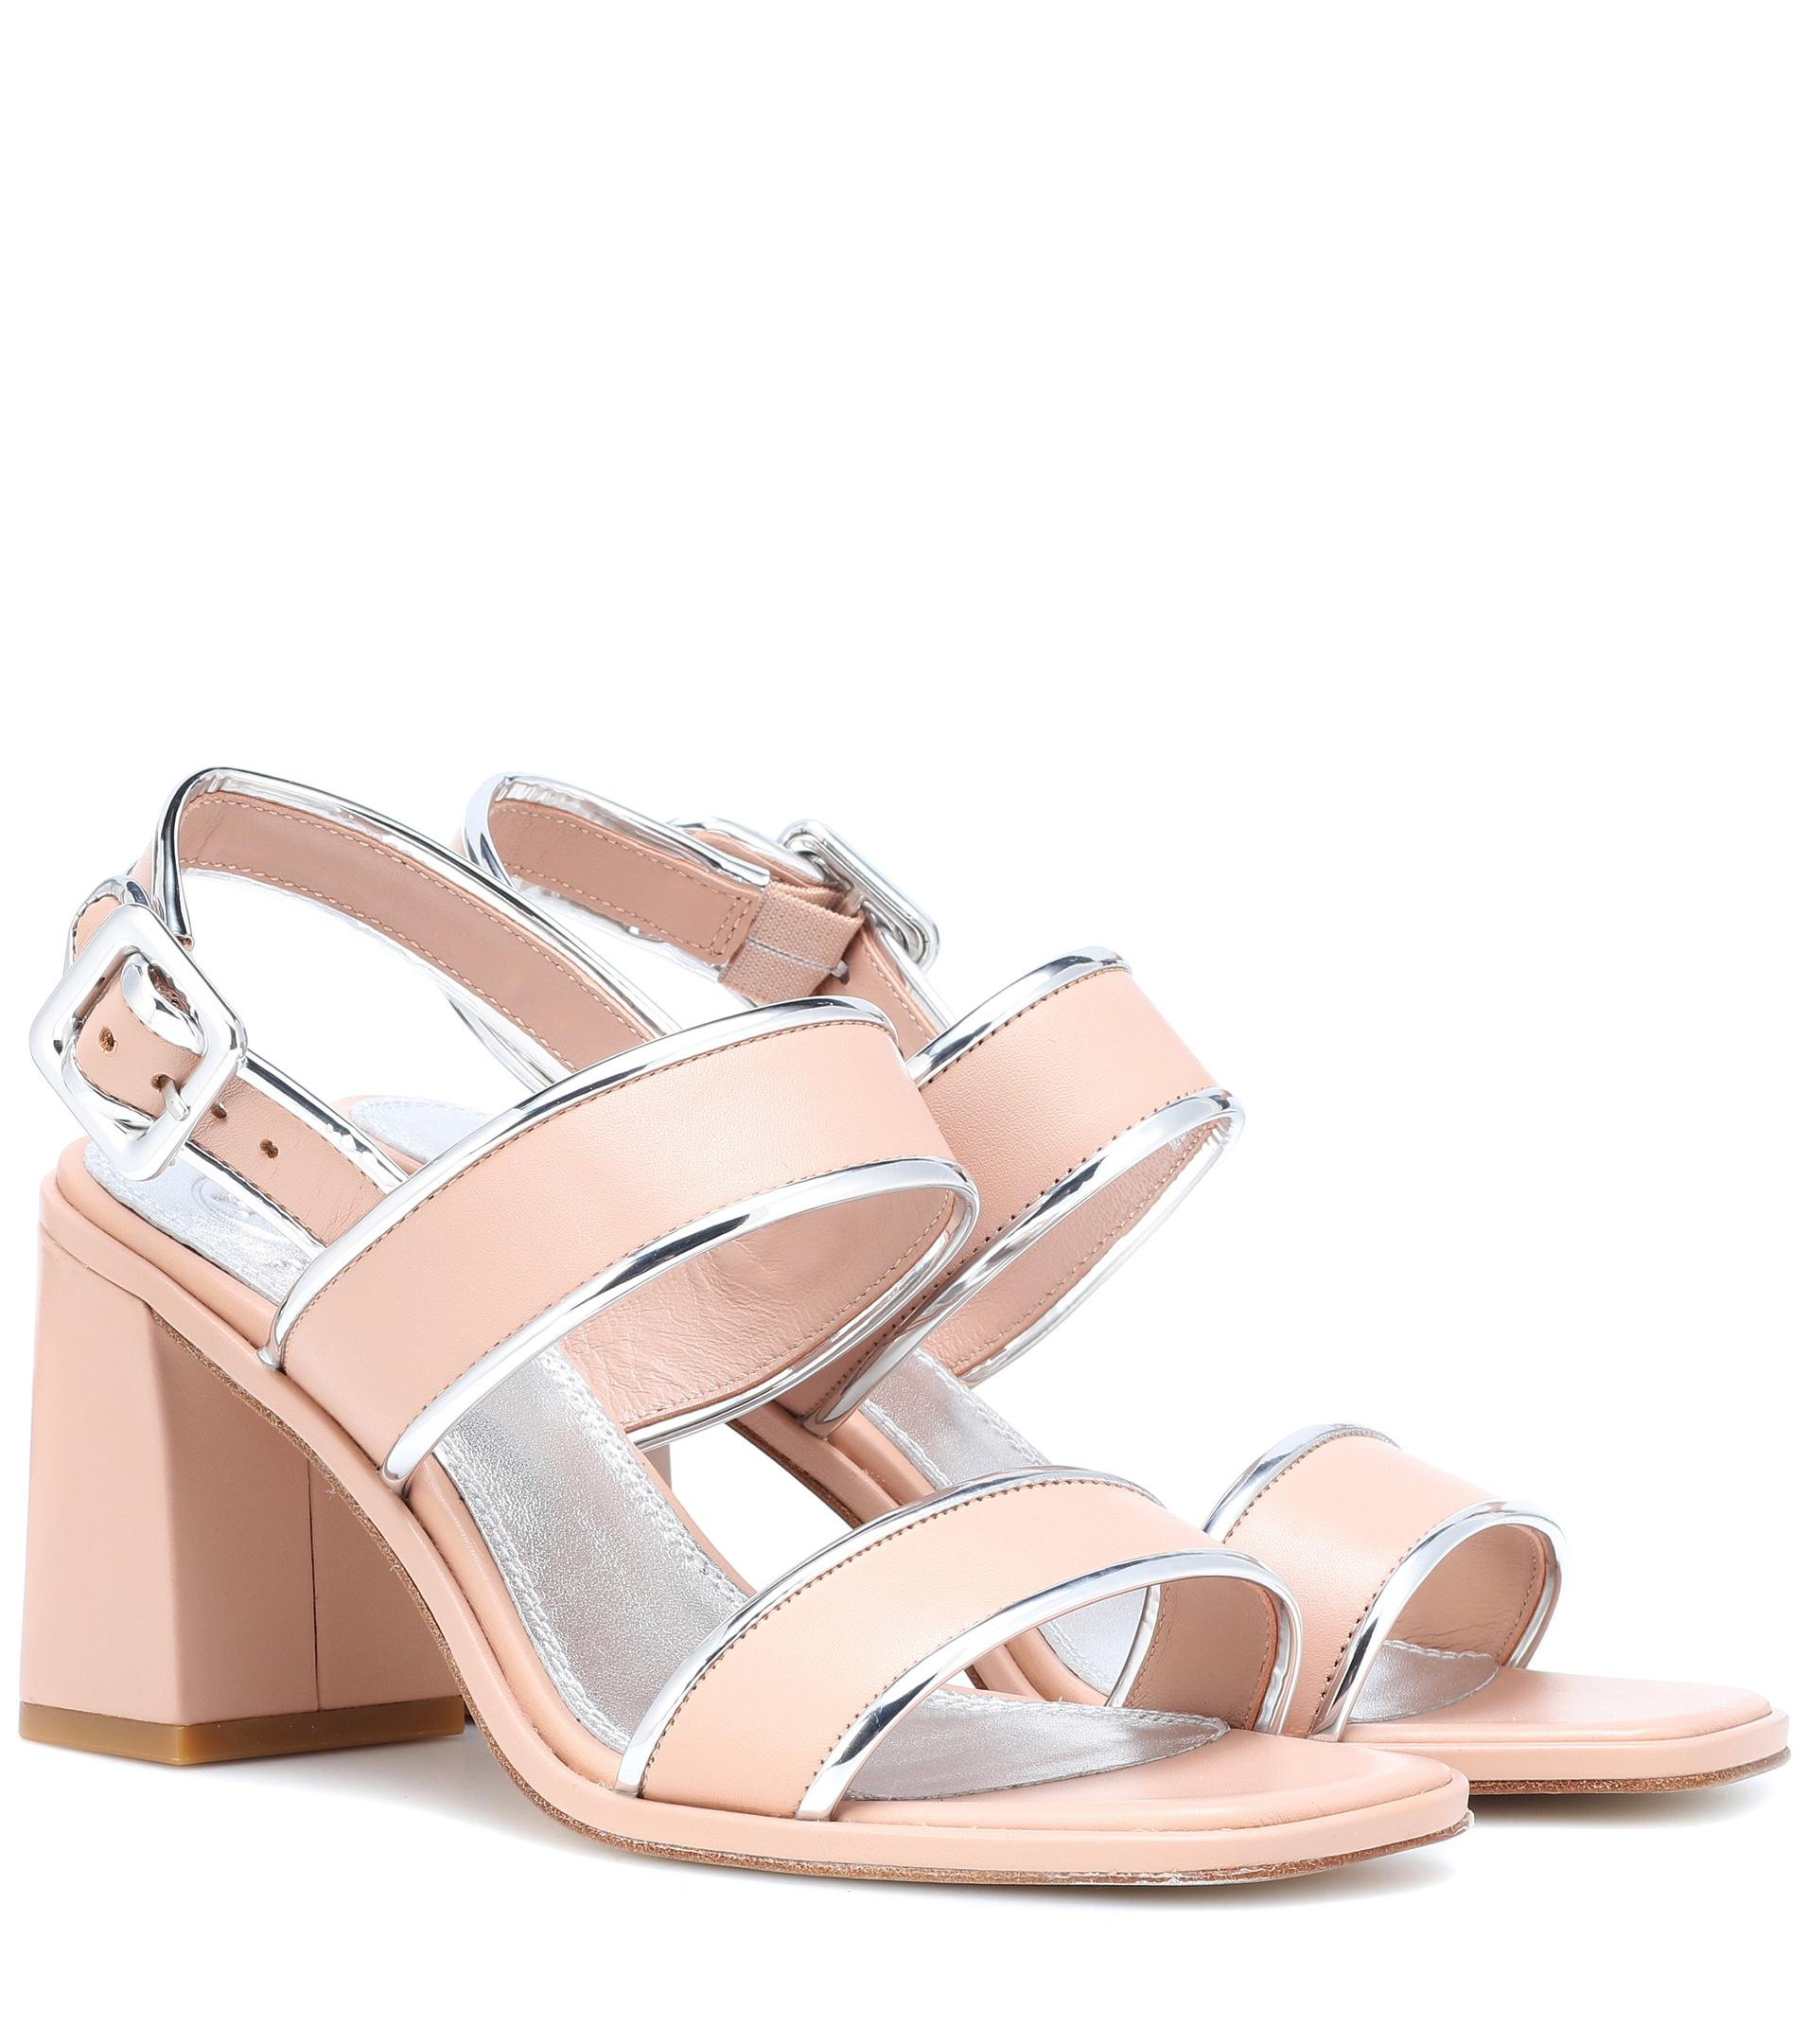 Tory Burch Delaney leather sandals with mastercard sale online IC7SHKyJjM